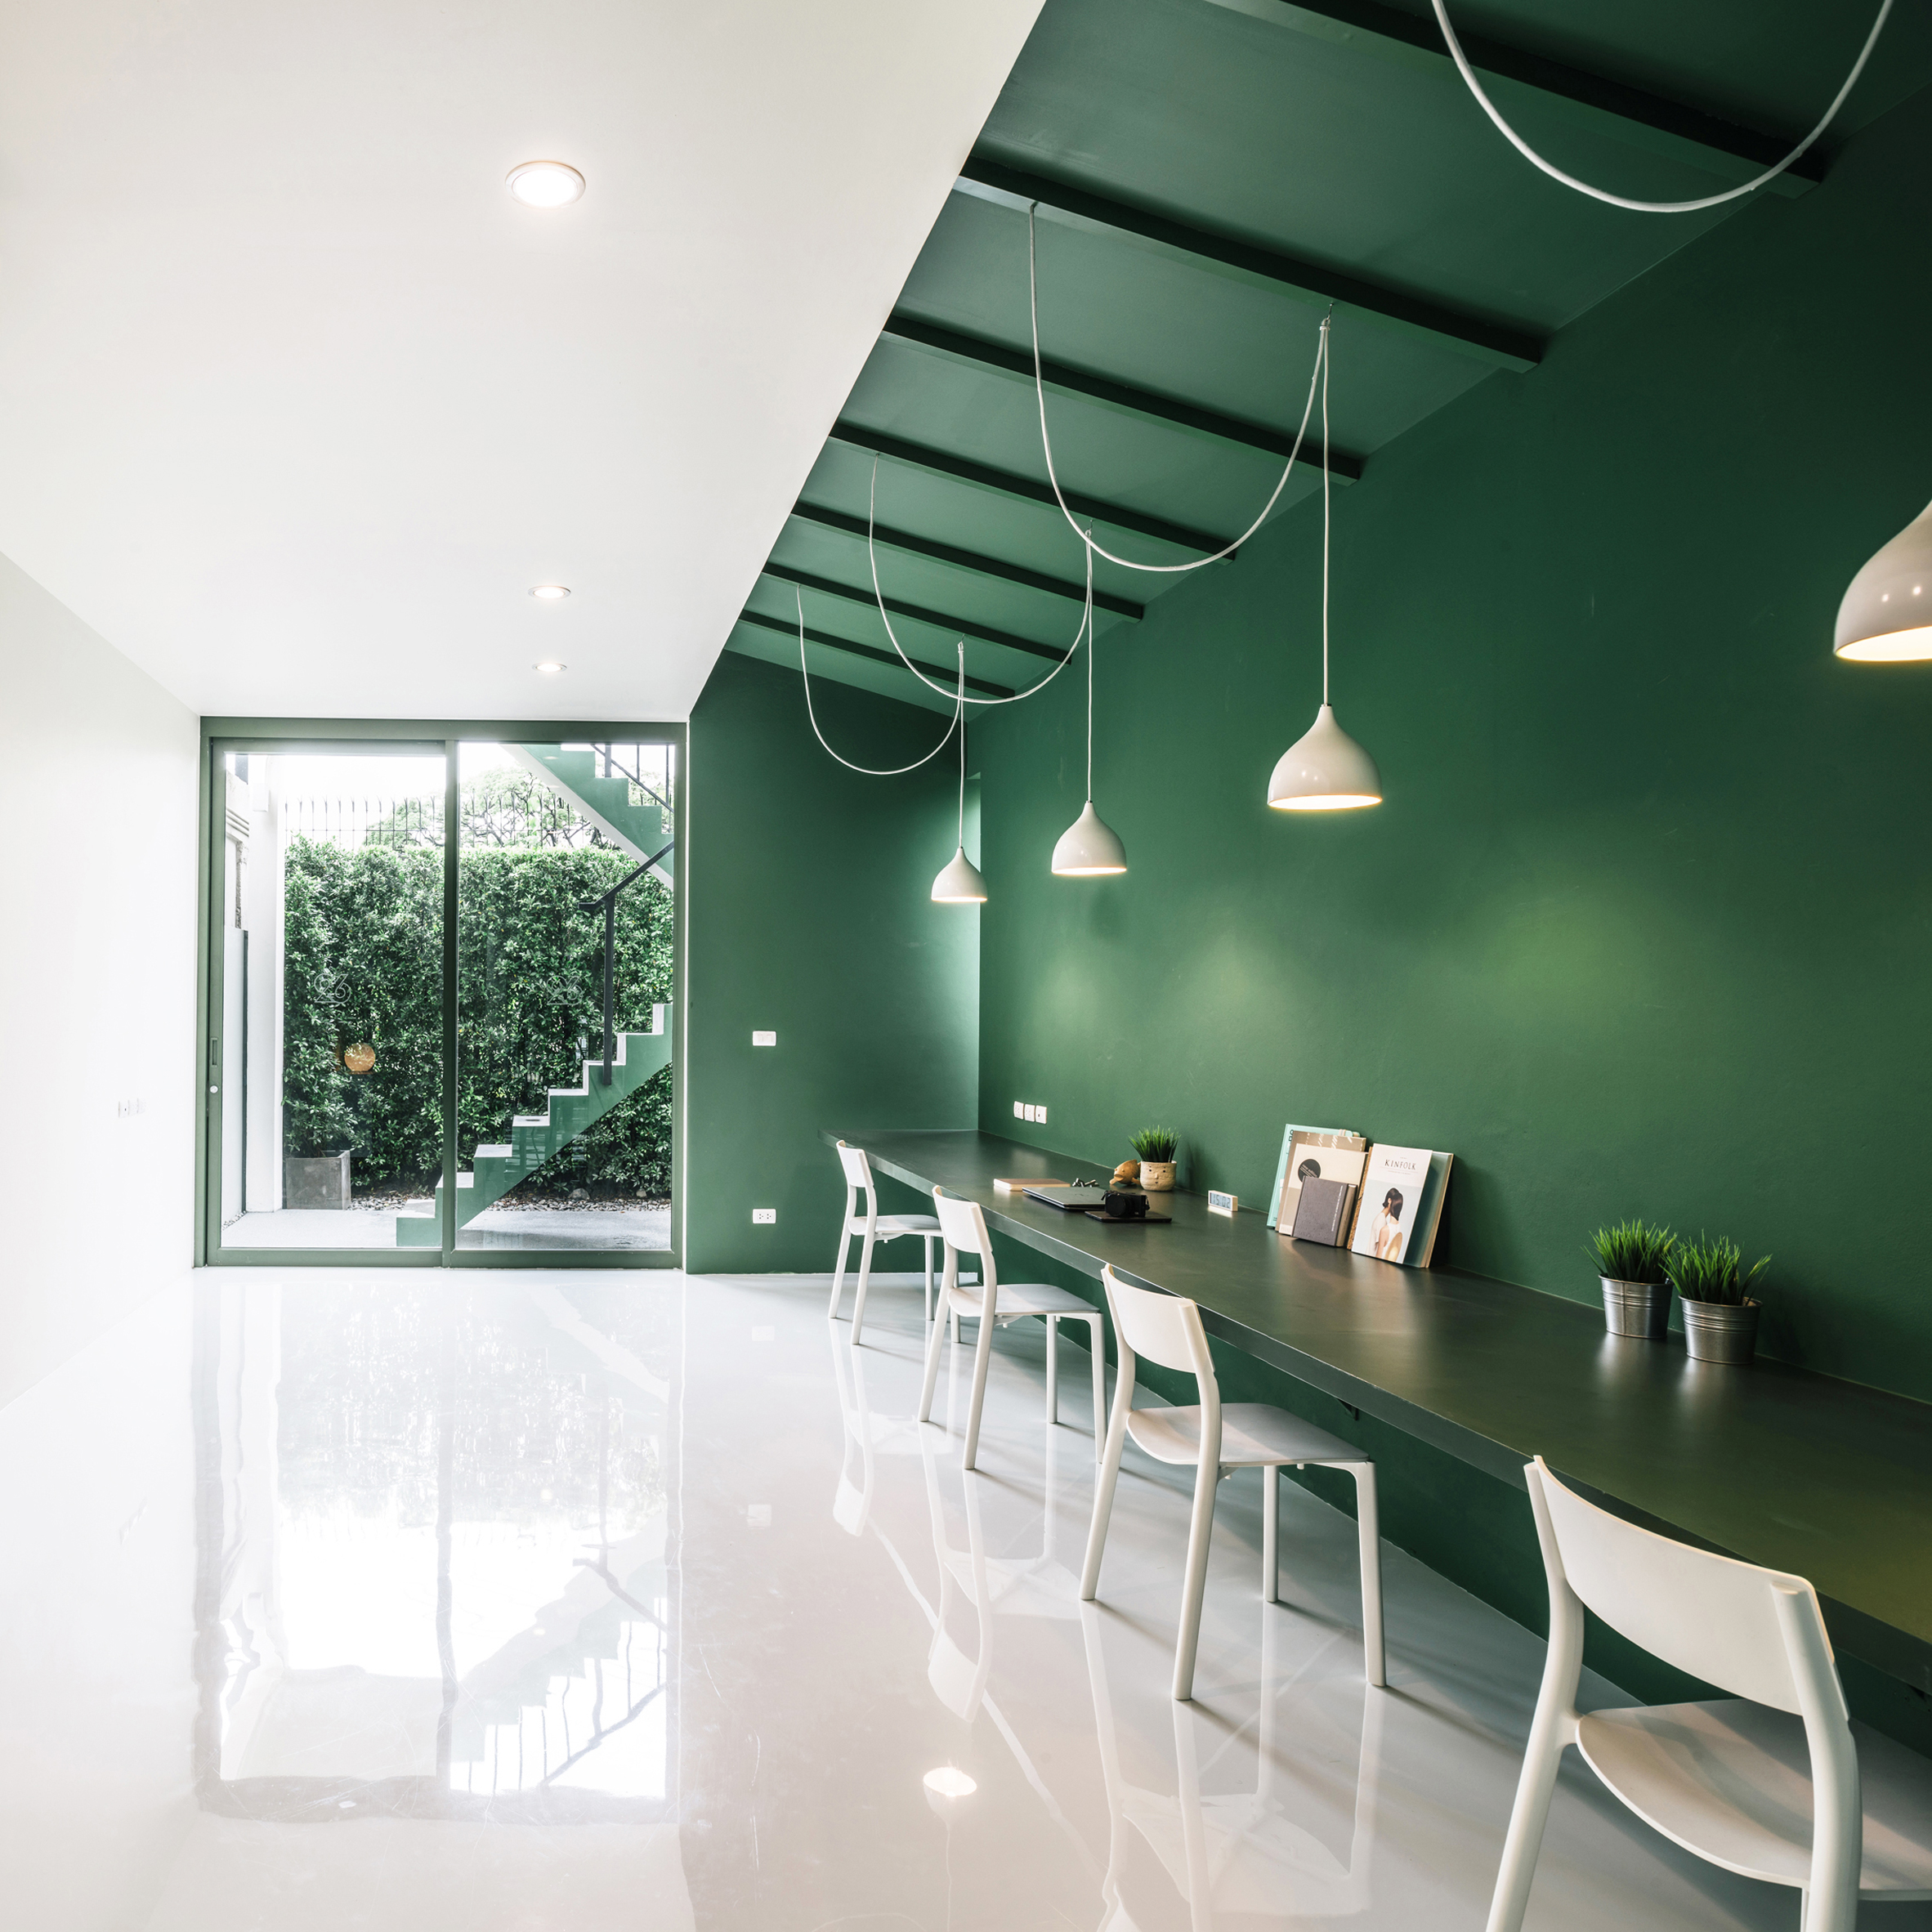 12 of the best minimalist office interiors where there s space to think rh dezeen com home office interior design ideas pictures office interior design images free download